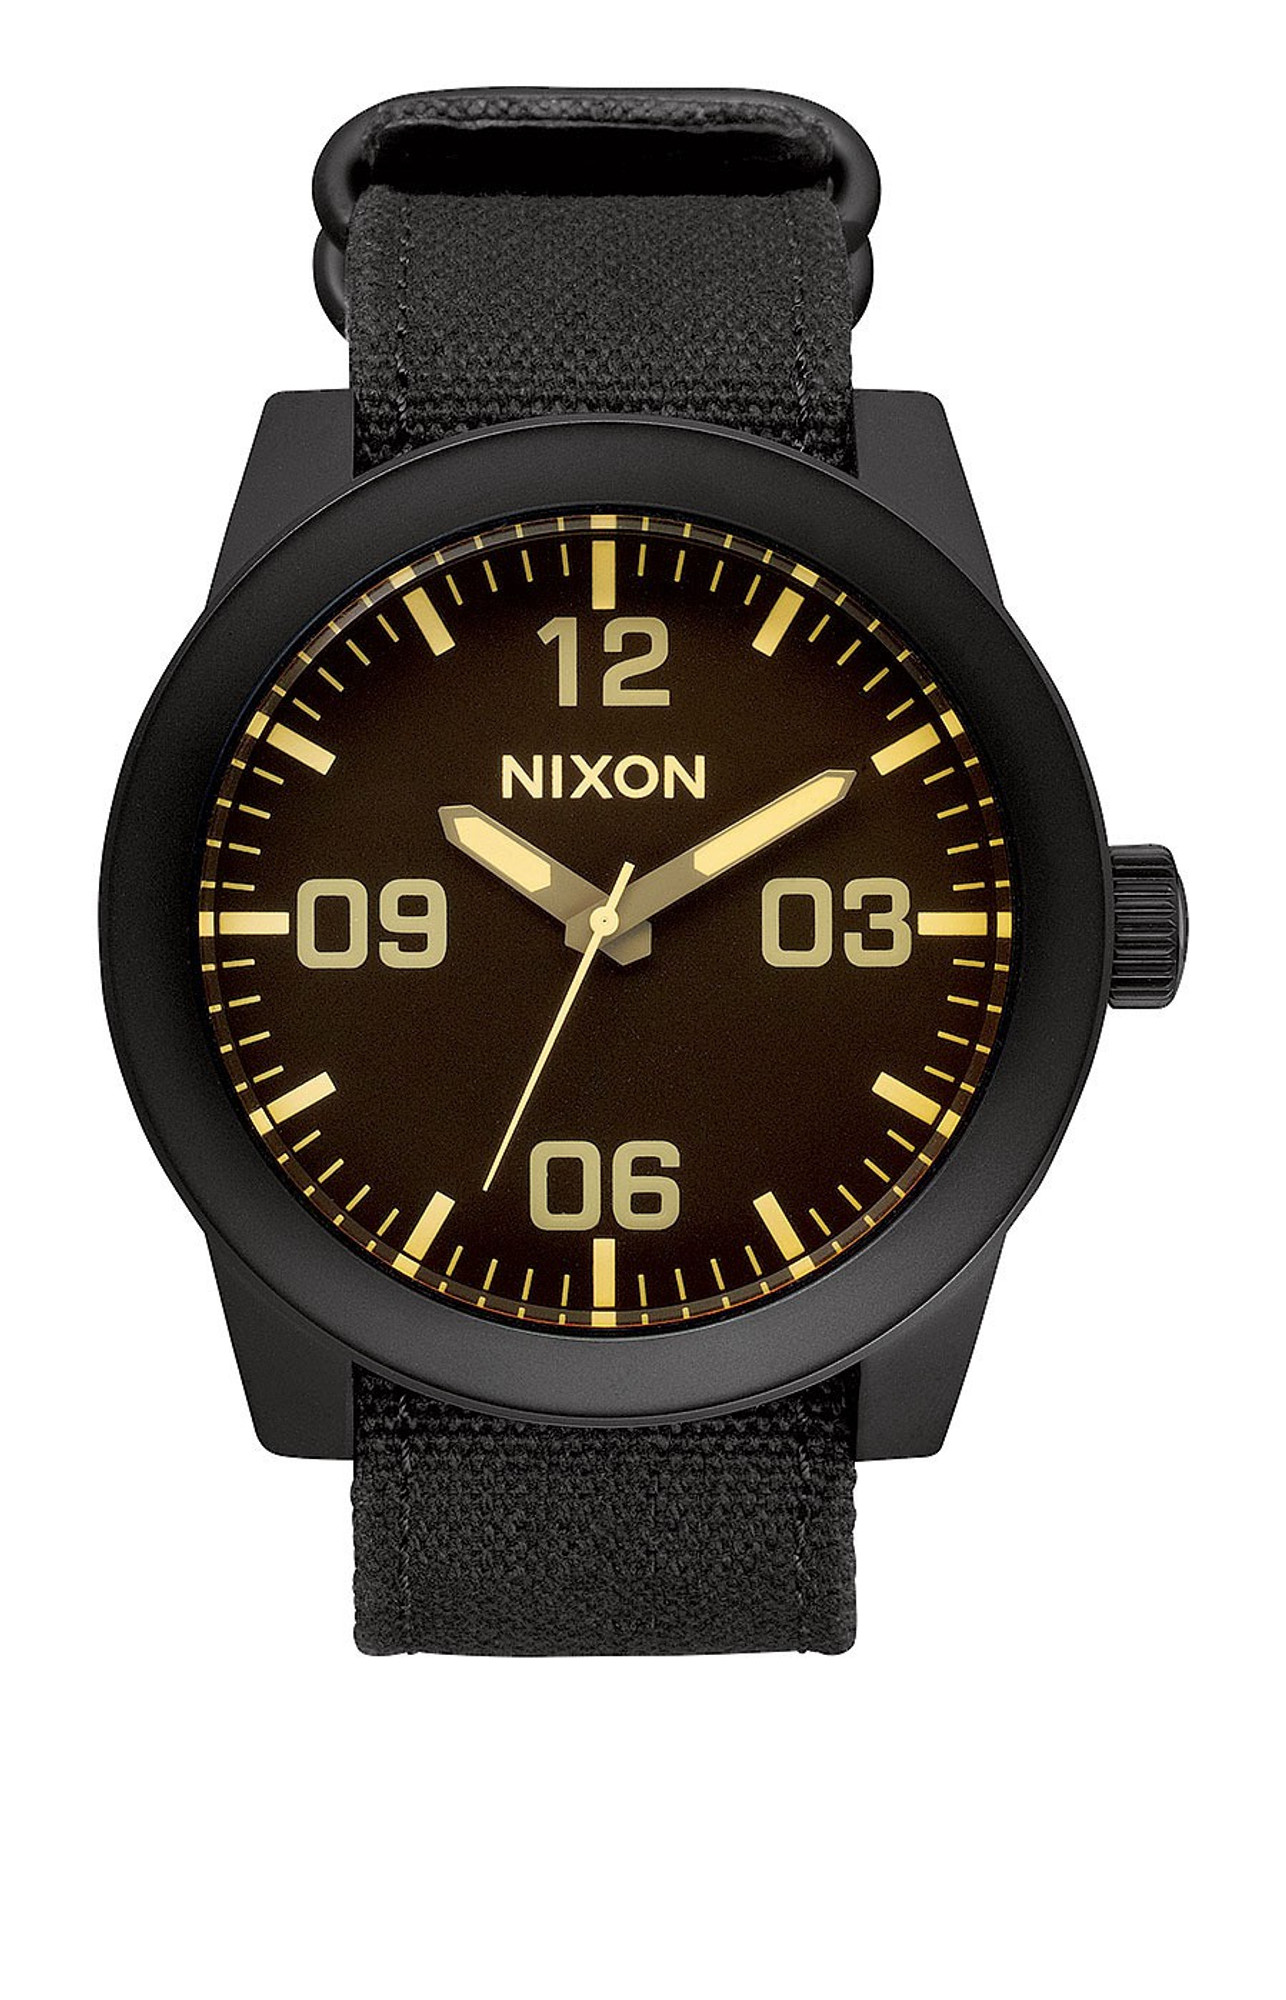 NIXON The Corporal Herrenuhr Schwarz Orange Tint